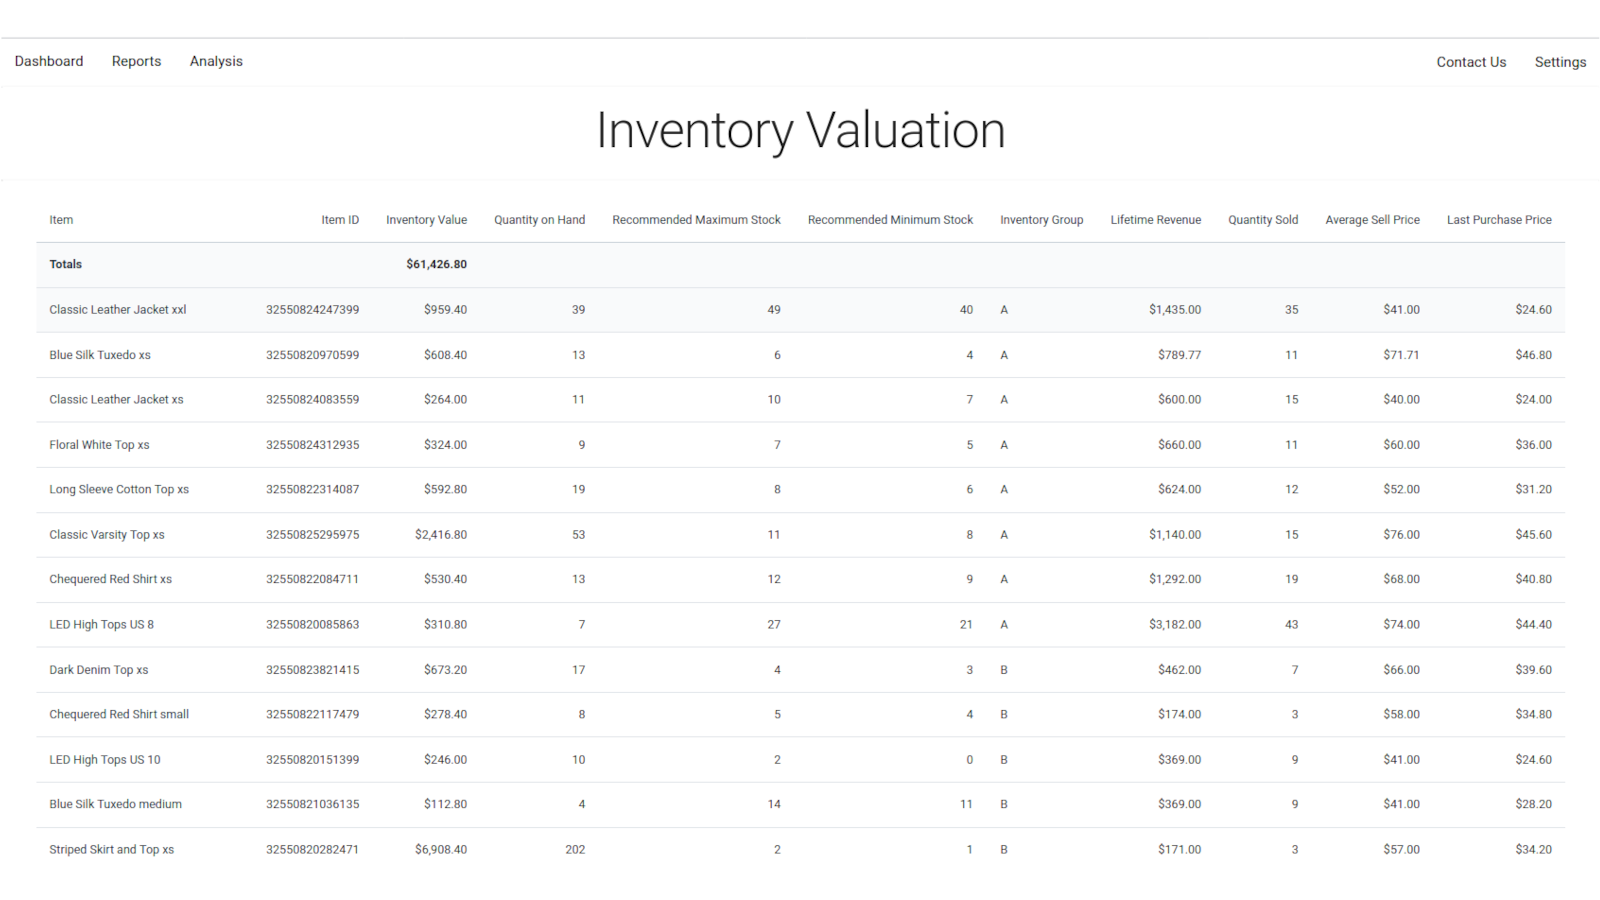 Inventory Valuation Report